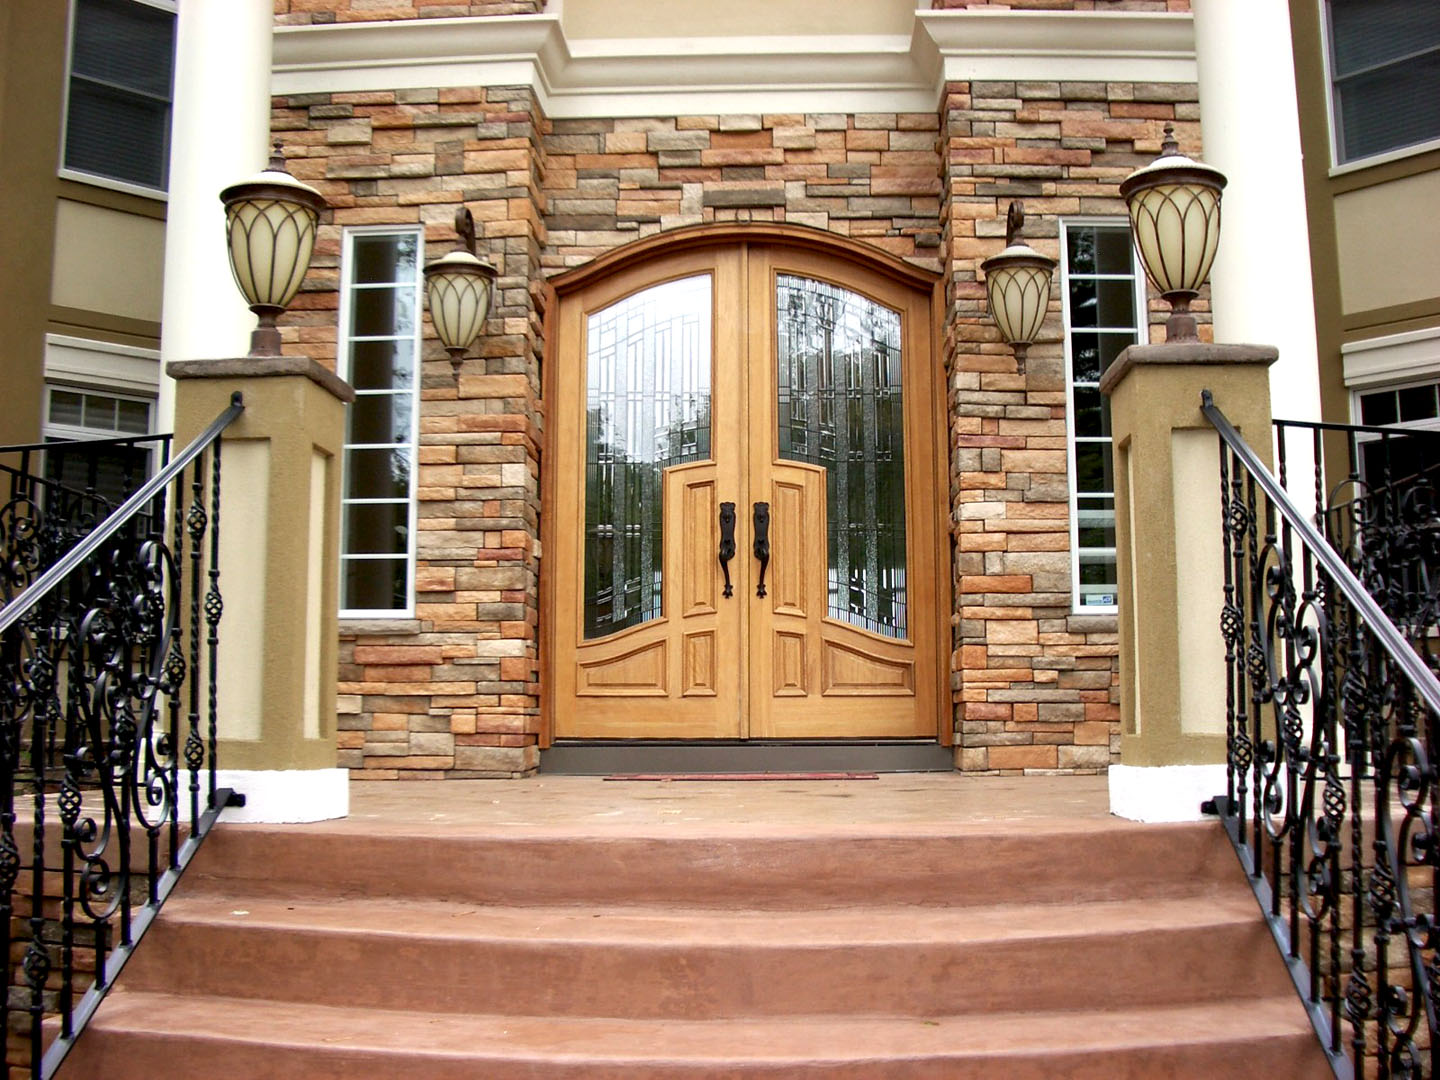 1080 #976534 ROUND TOP DOORS – ARCHED TOP DOORS – RADIUS DOORS FOR   IN  image Arched Wood Entry Doors 40831440